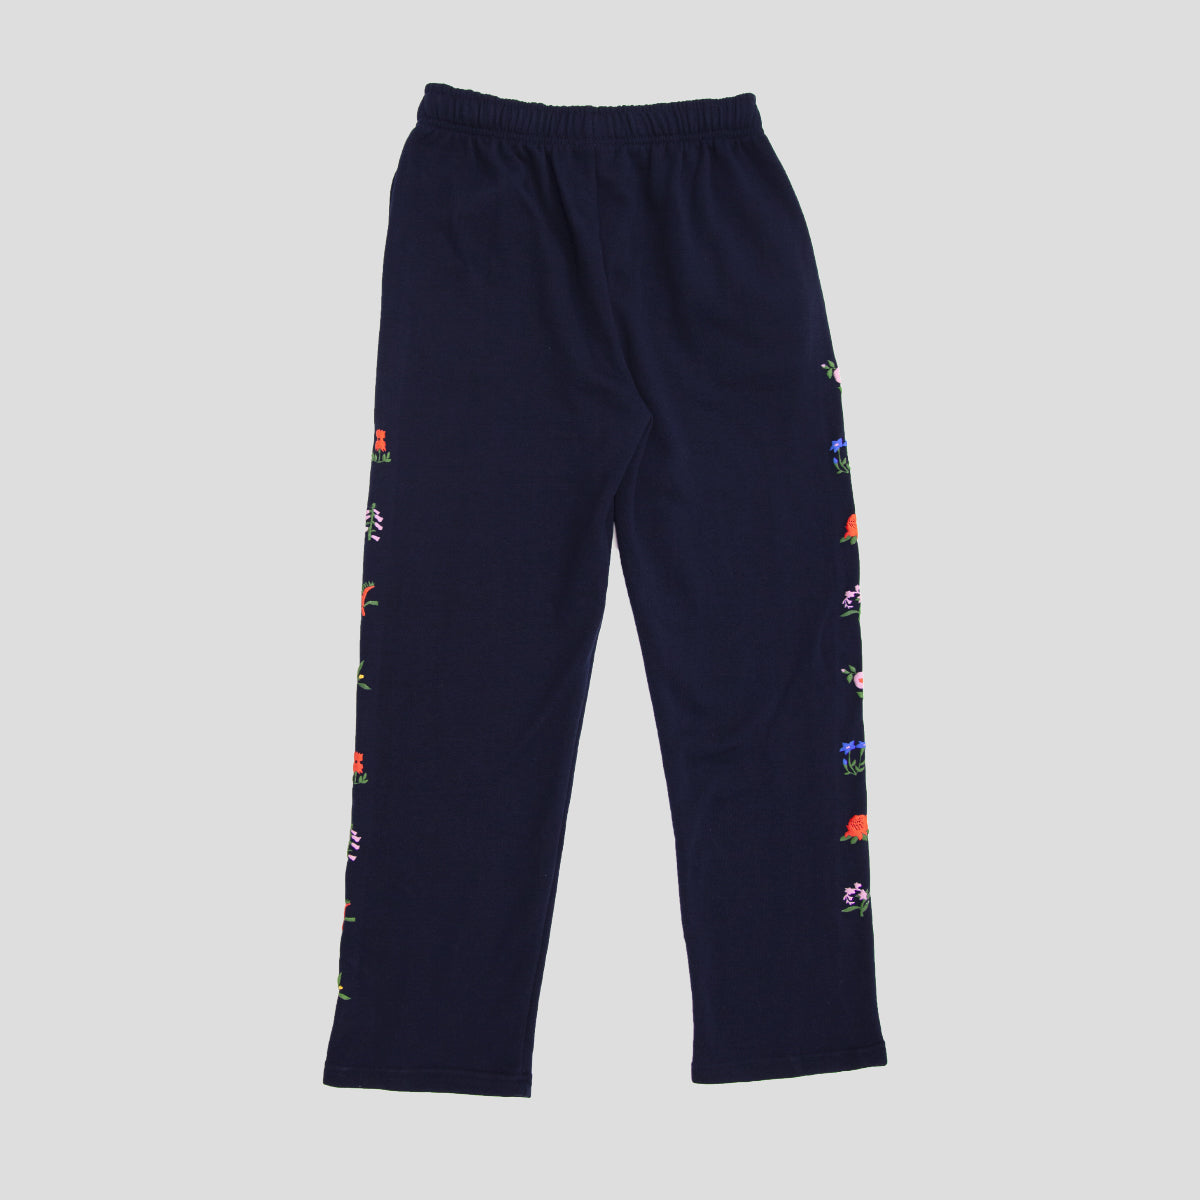 "PASS~PORT ""FLORAL EMBLEM"" PUFF TRACK PANTS NAVY"